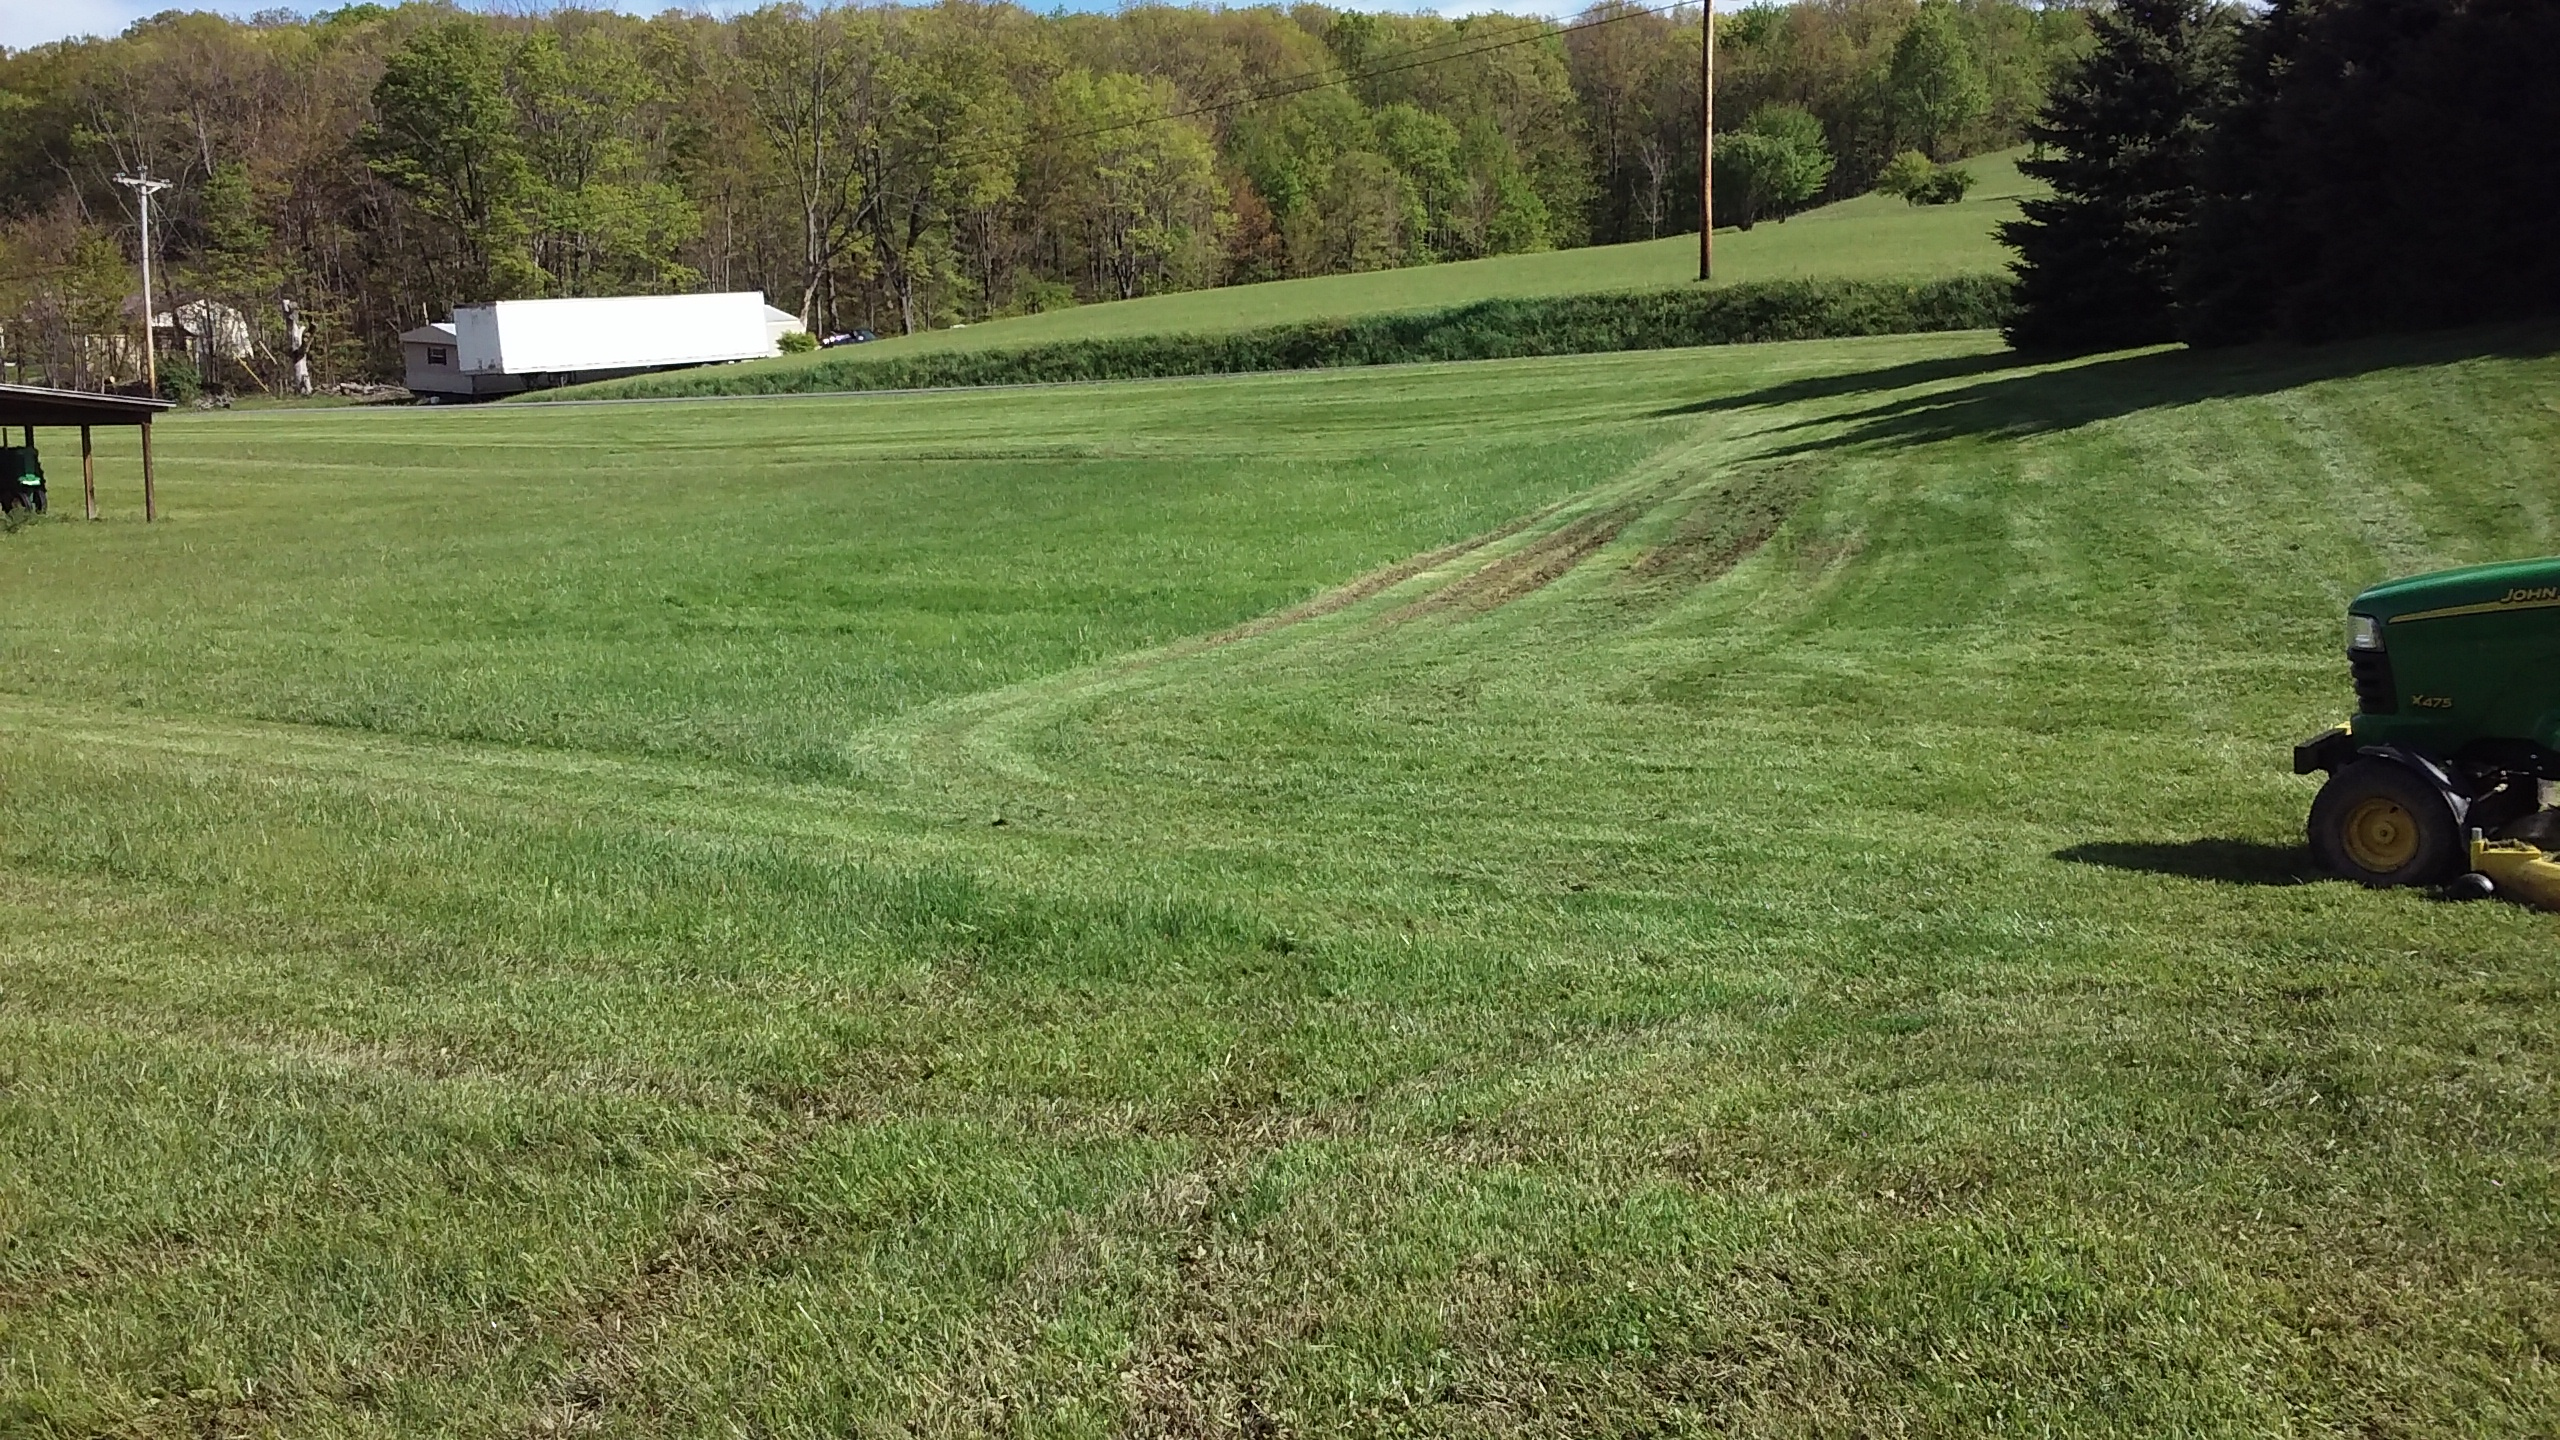 Click image for larger version.  Name:mowing when it was too wet-made tire marks in grass.jpg Views:7 Size:2.03 MB ID:365730